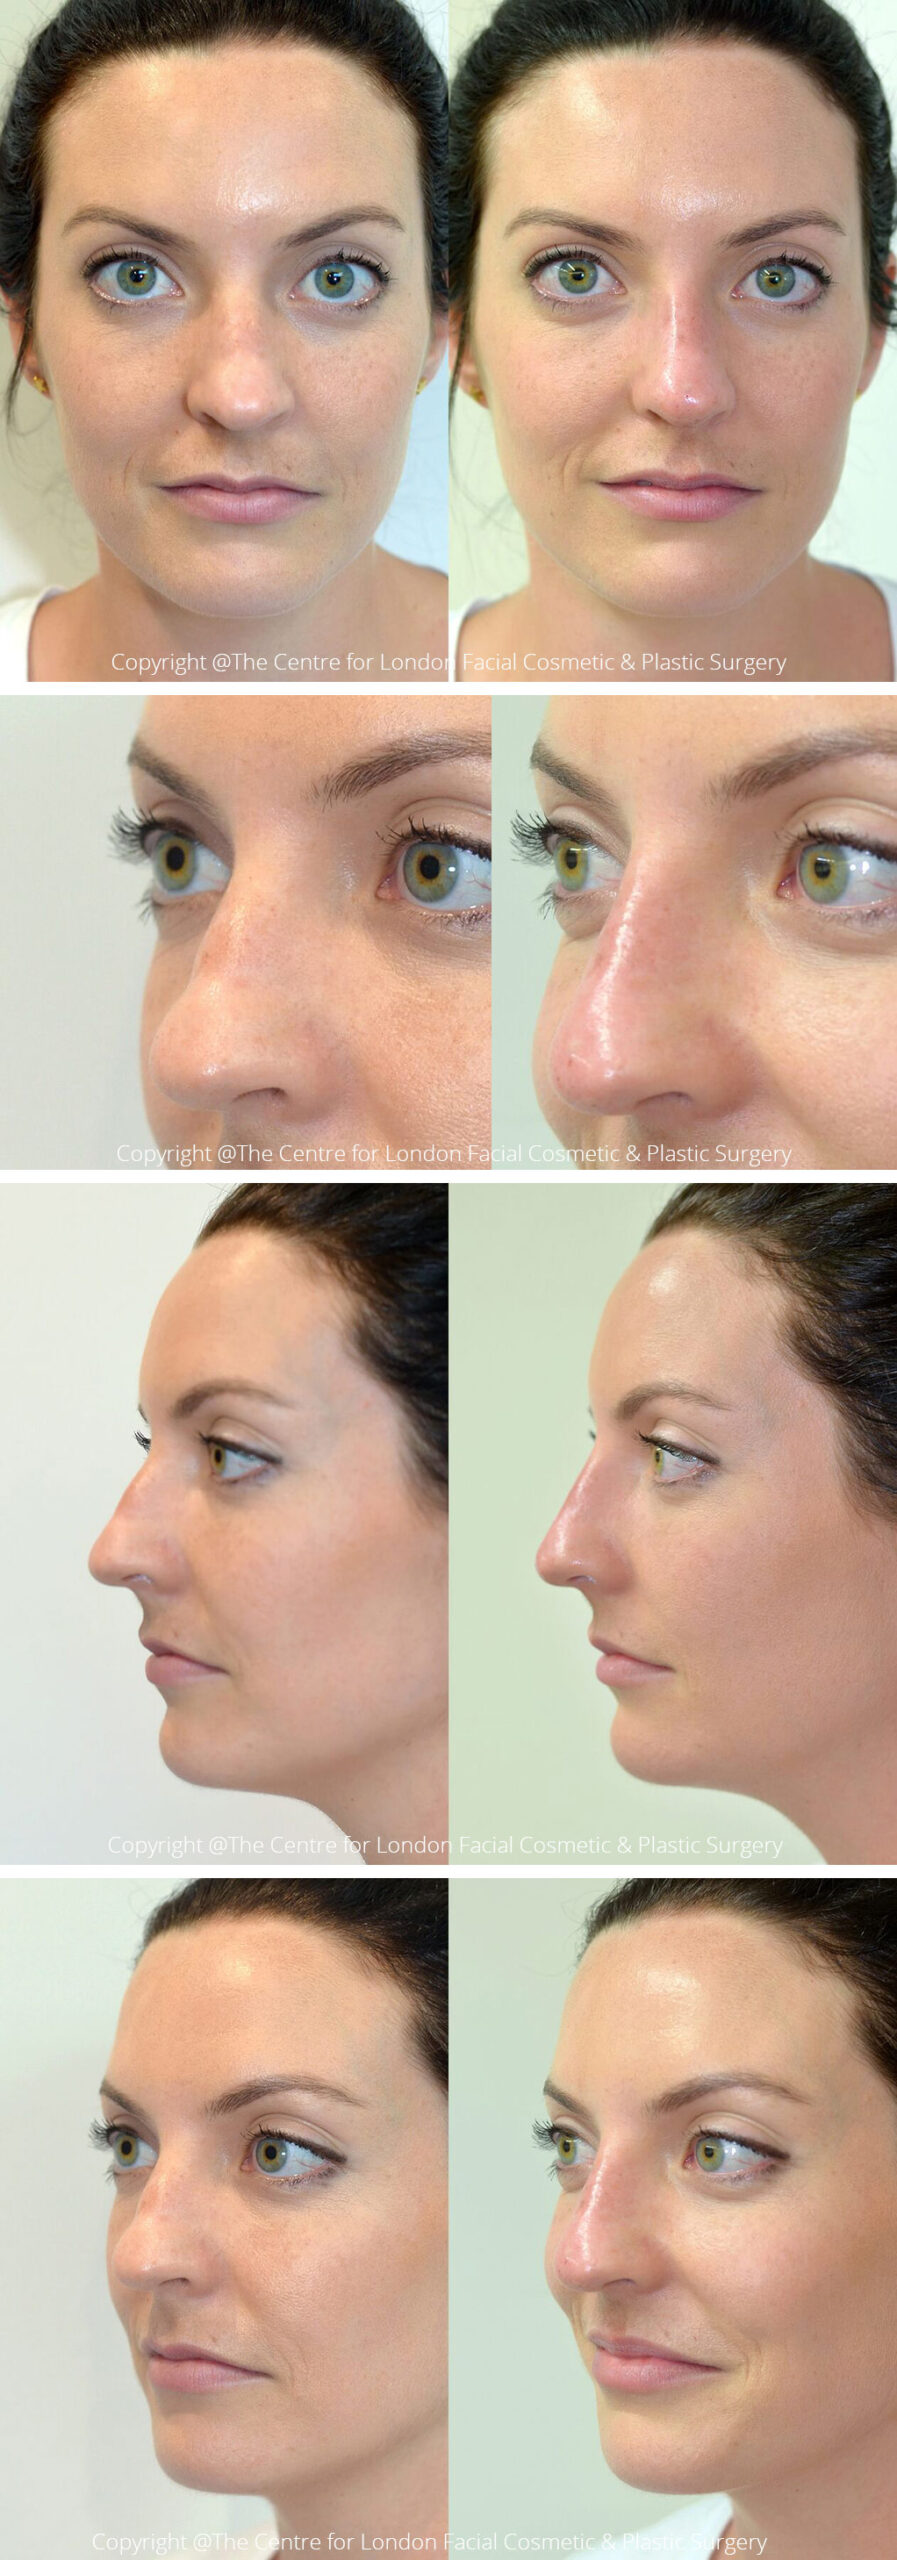 Woman's face, Before and After Non-Surgical Rhinoplasty Treatment, front, left side and oblique view, patient 2